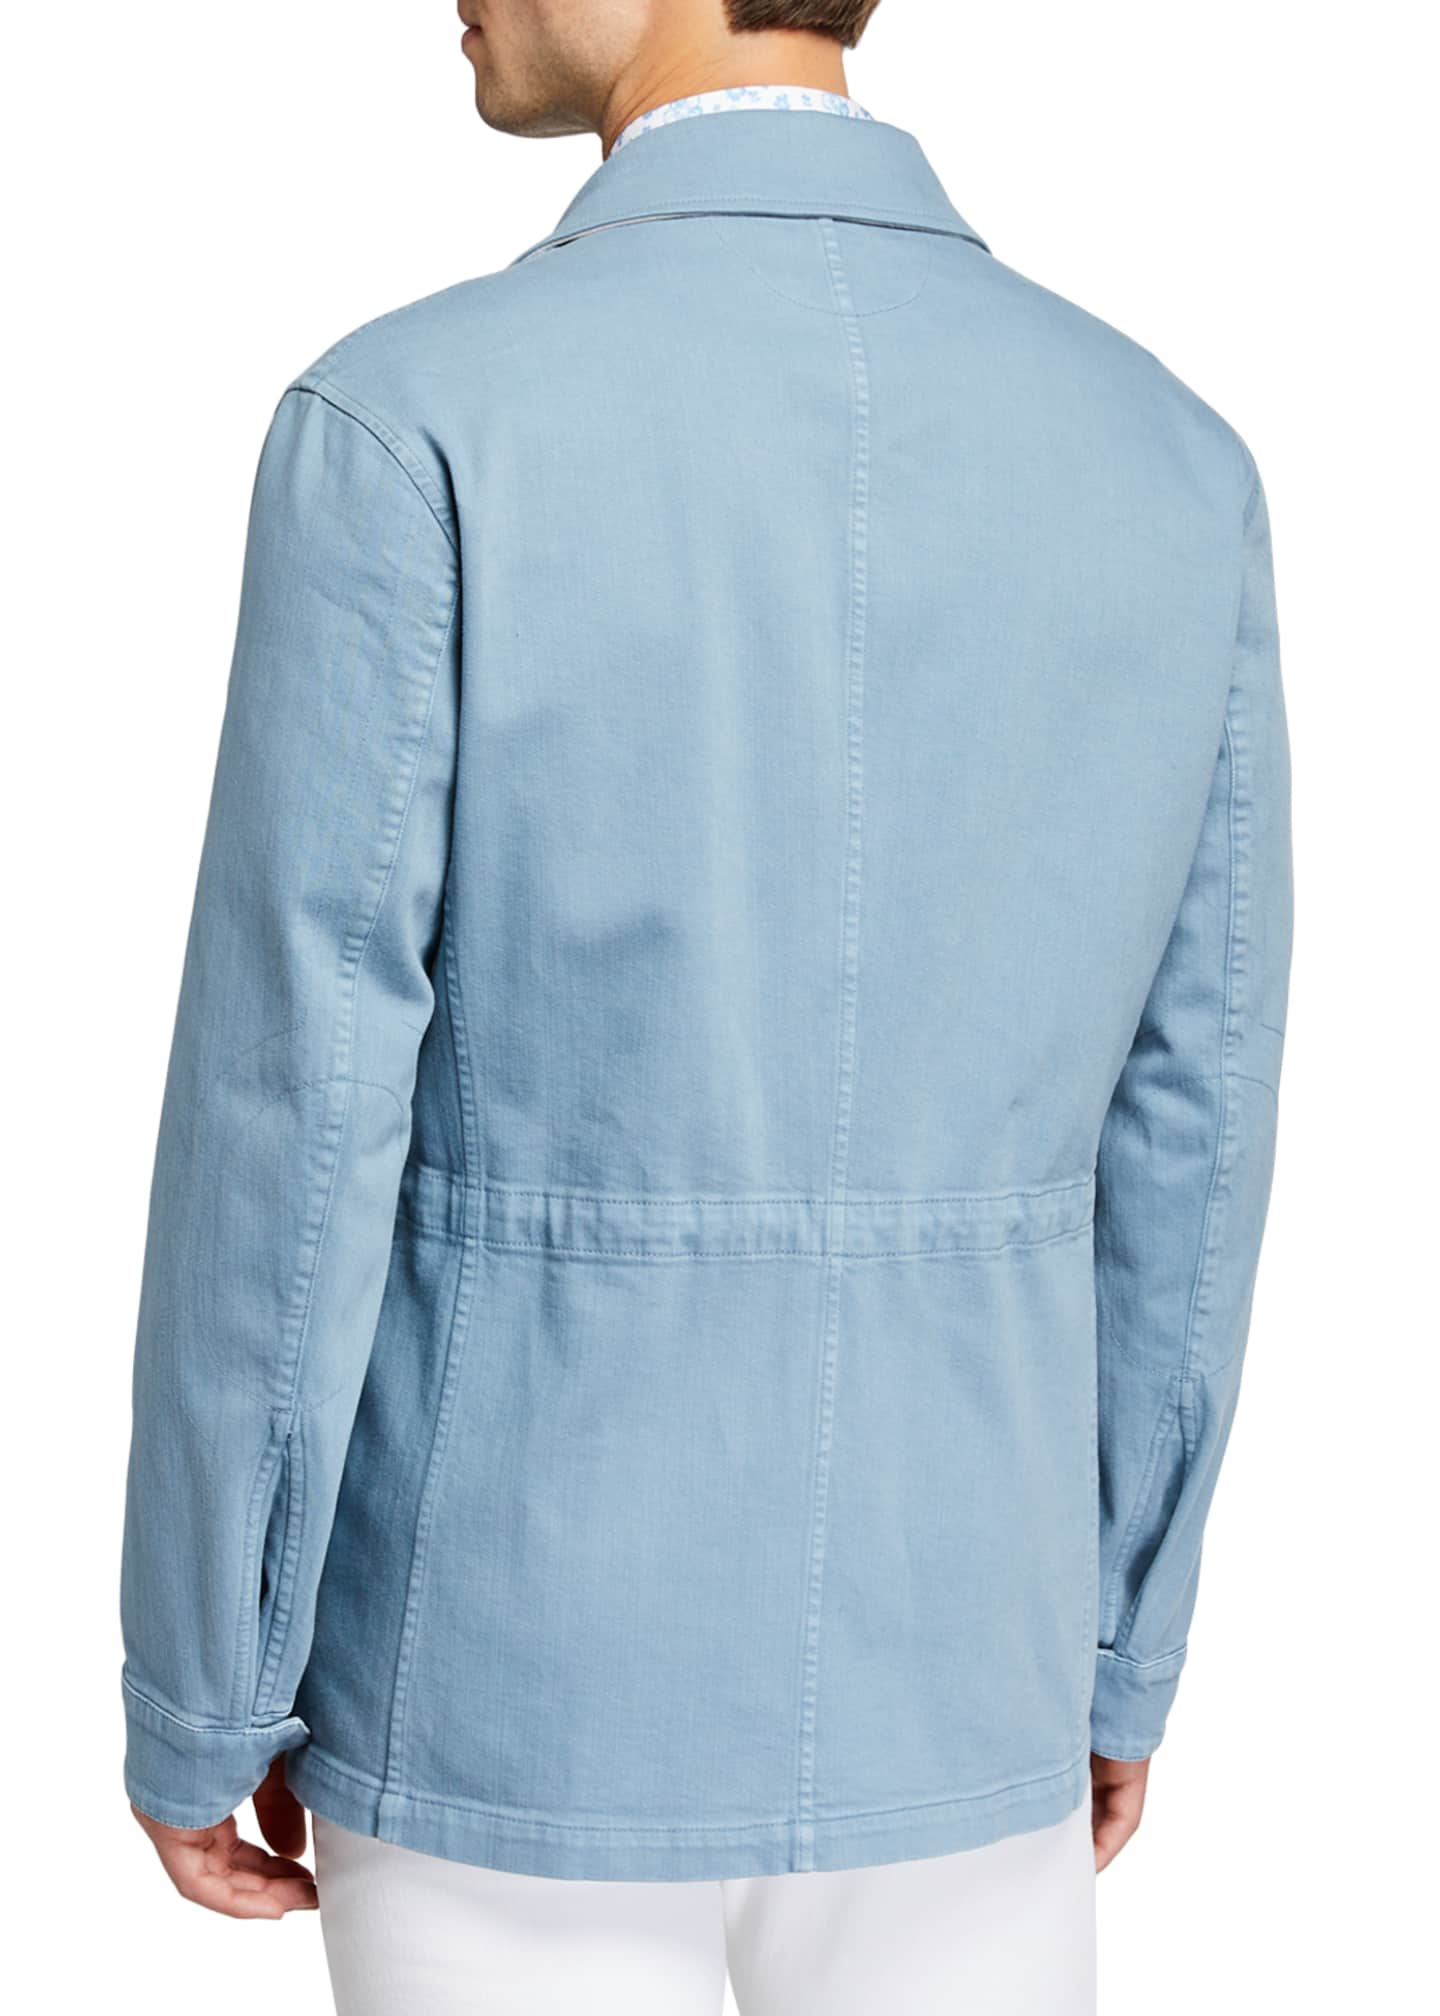 Image 3 of 3: Men's Light Wash Denim Safari Jacket